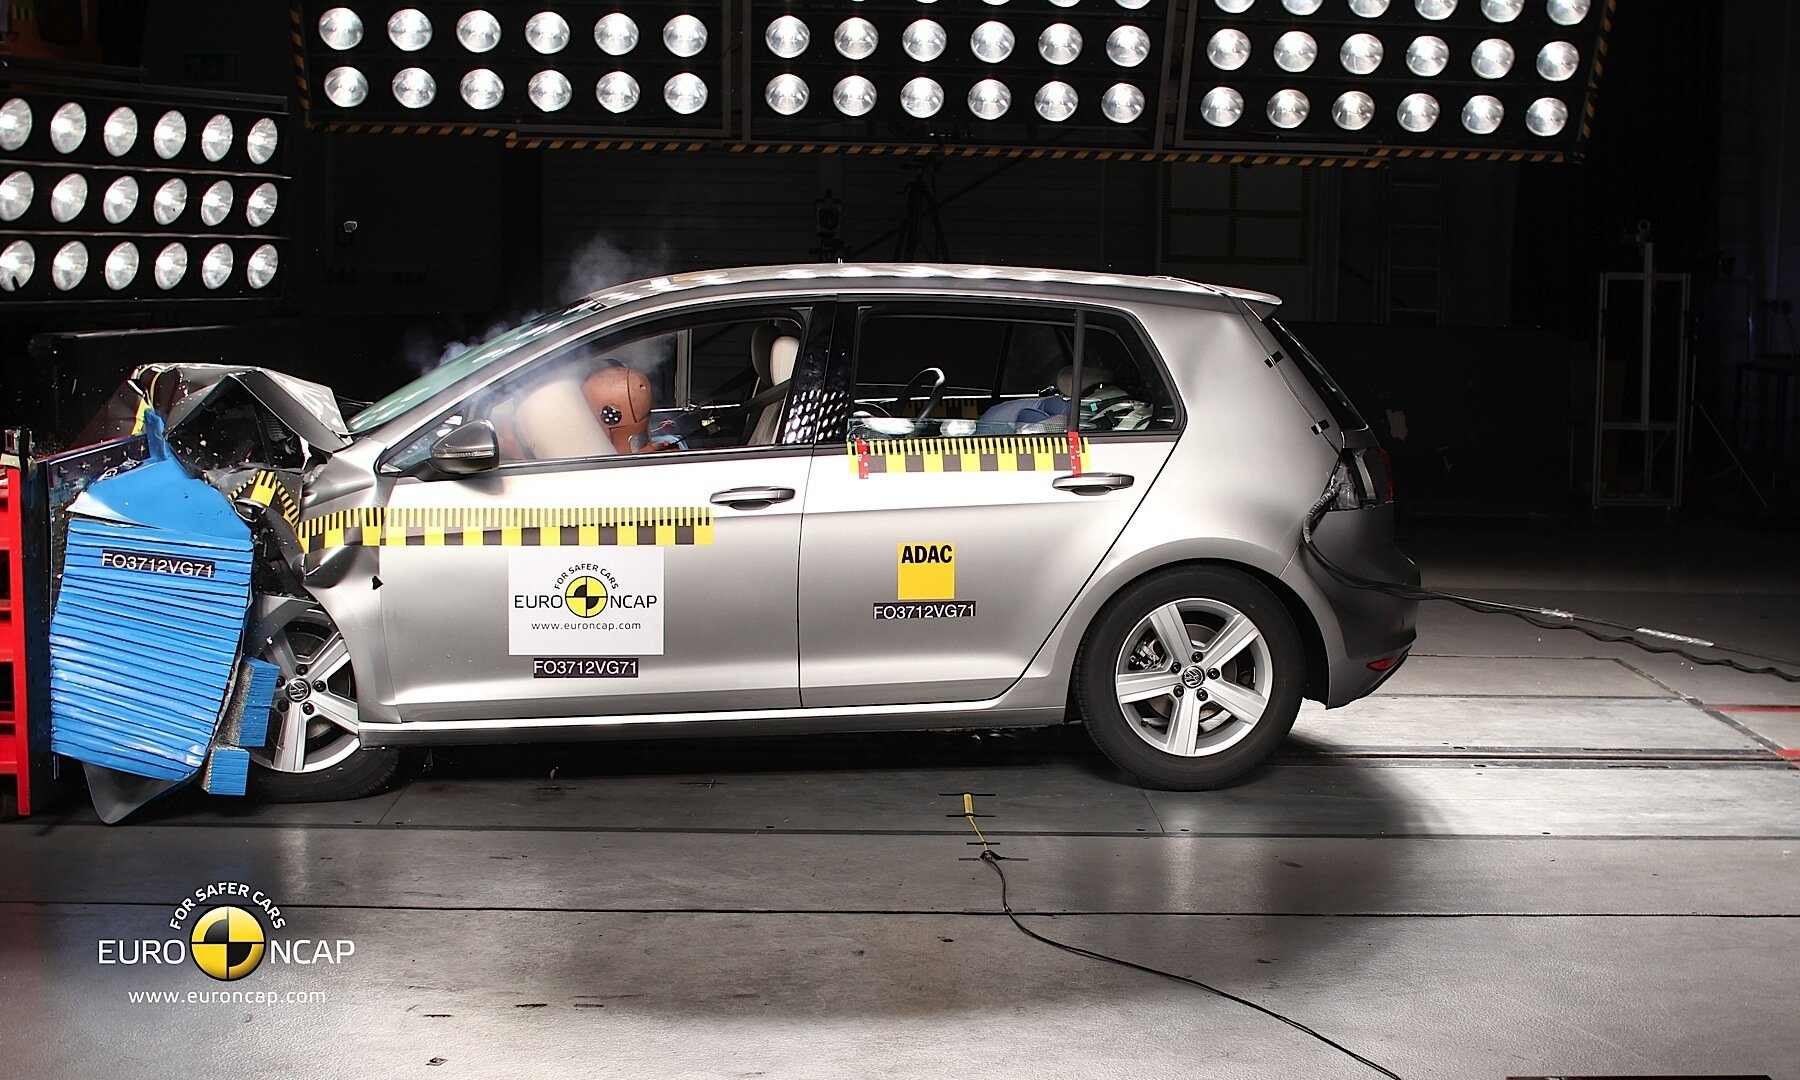 Volkswagen Golf GTE Plug-in Hybrid crash test result